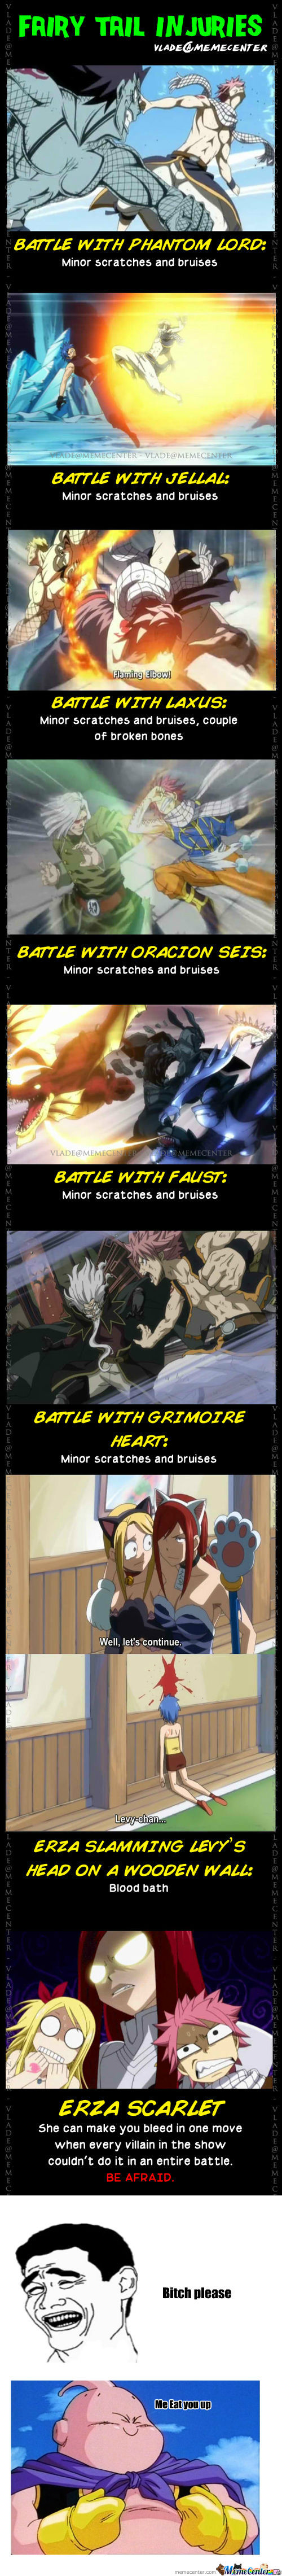 [RMX] [RMX] Fairy Tail Injuries